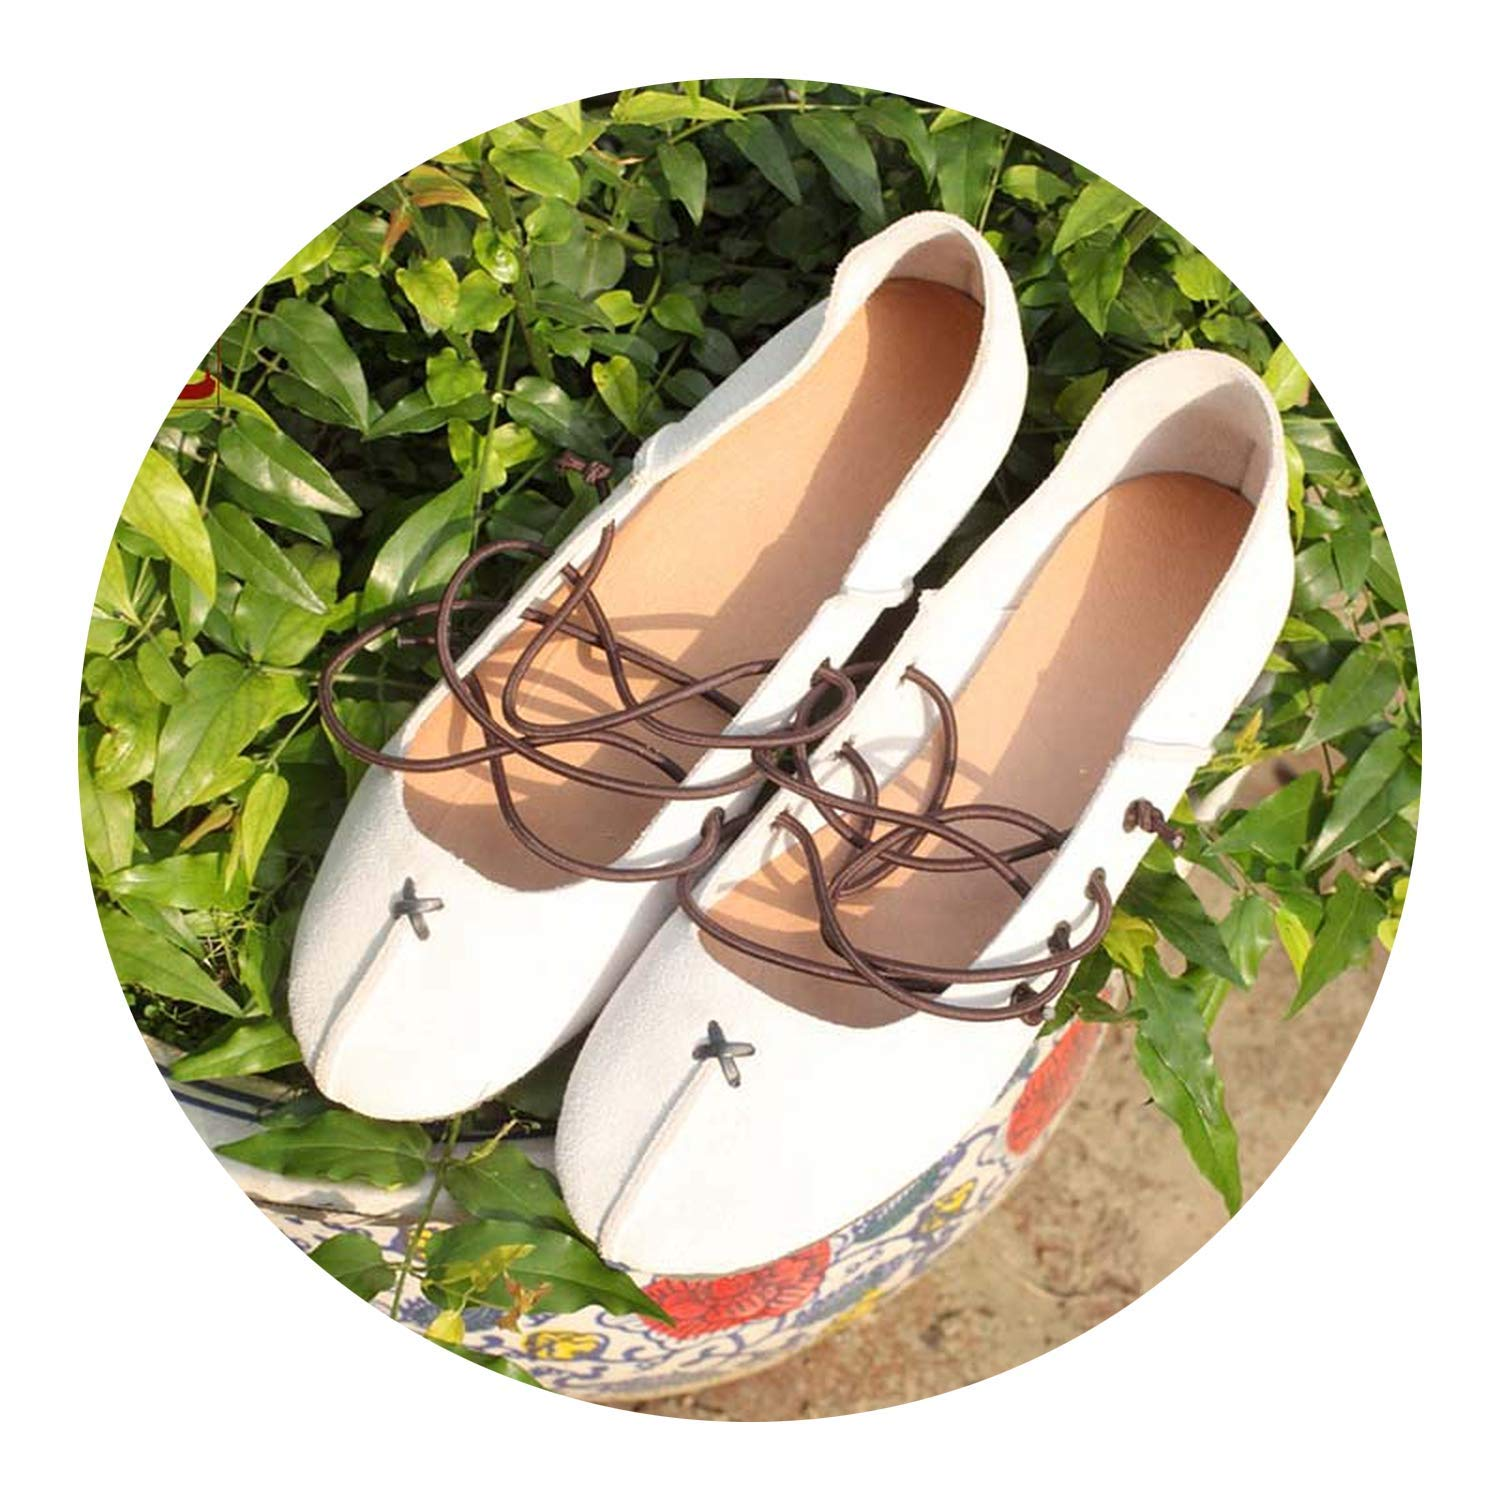 Ballet Footwear Flats Handmade Genuine Leather Straps Casual Shoes Green Flats for Big Size,5.5M,White